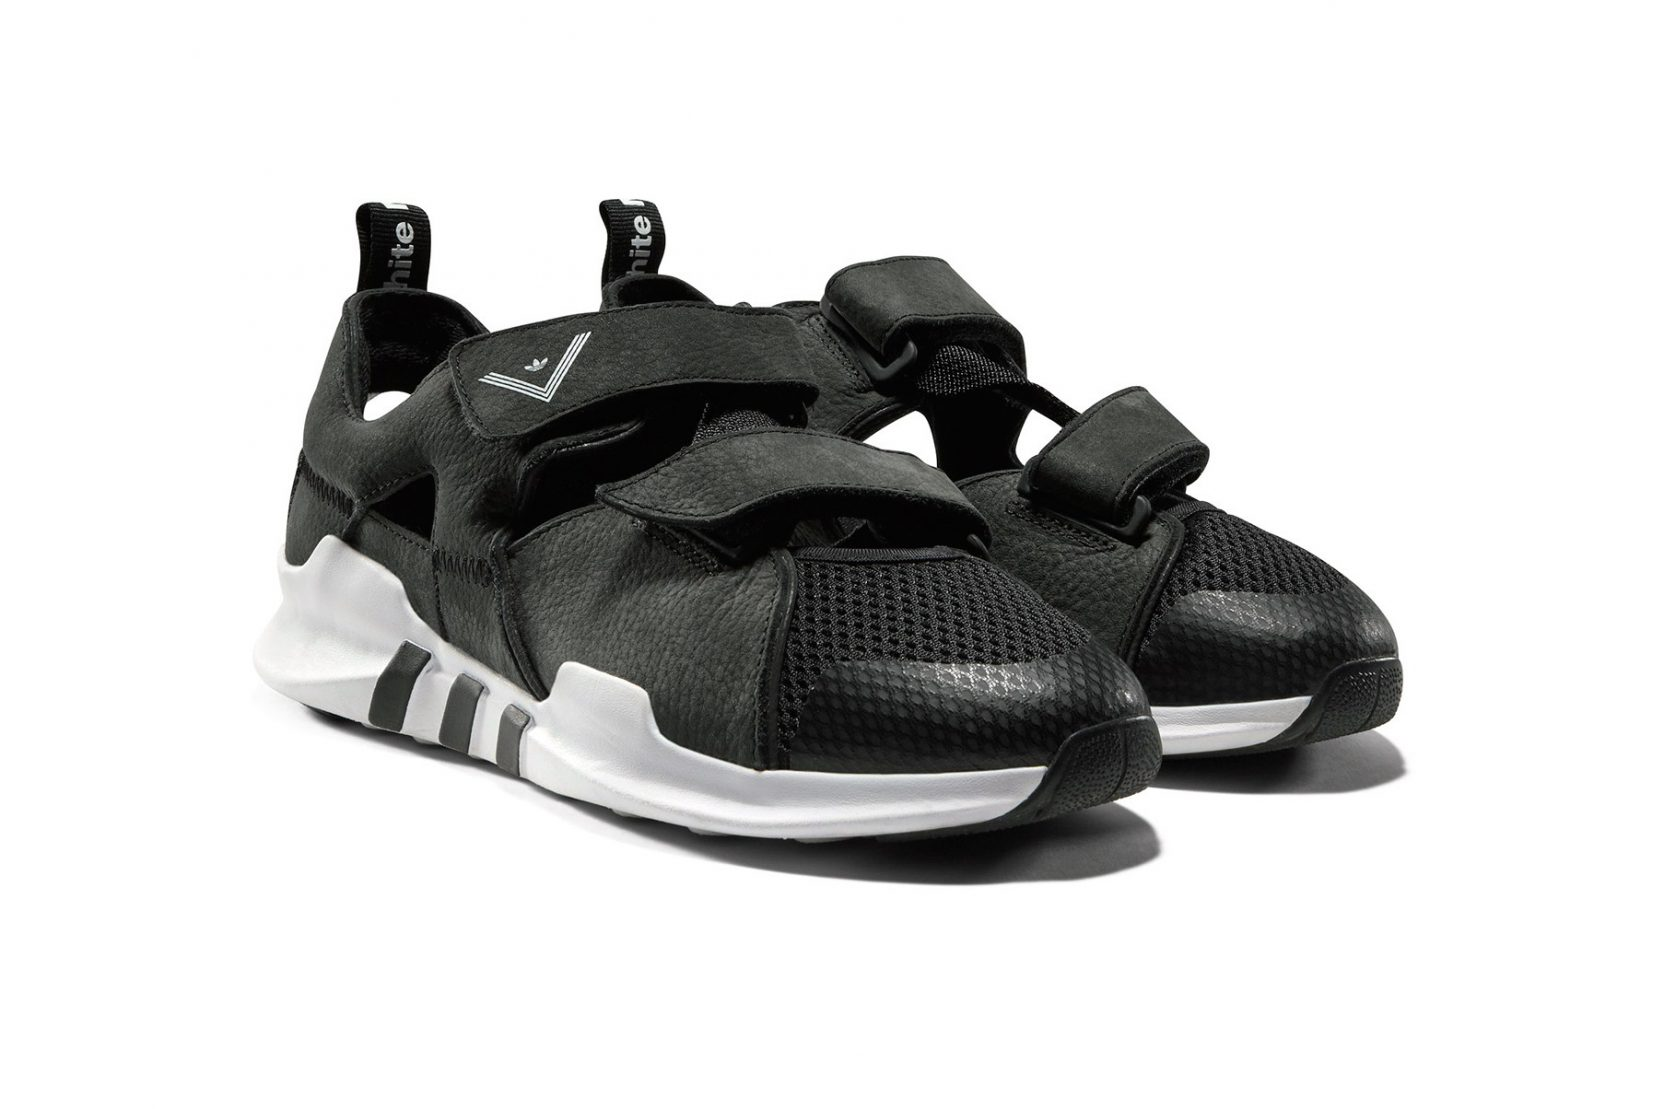 White Mountaineering x Adidas Spring Collection 8